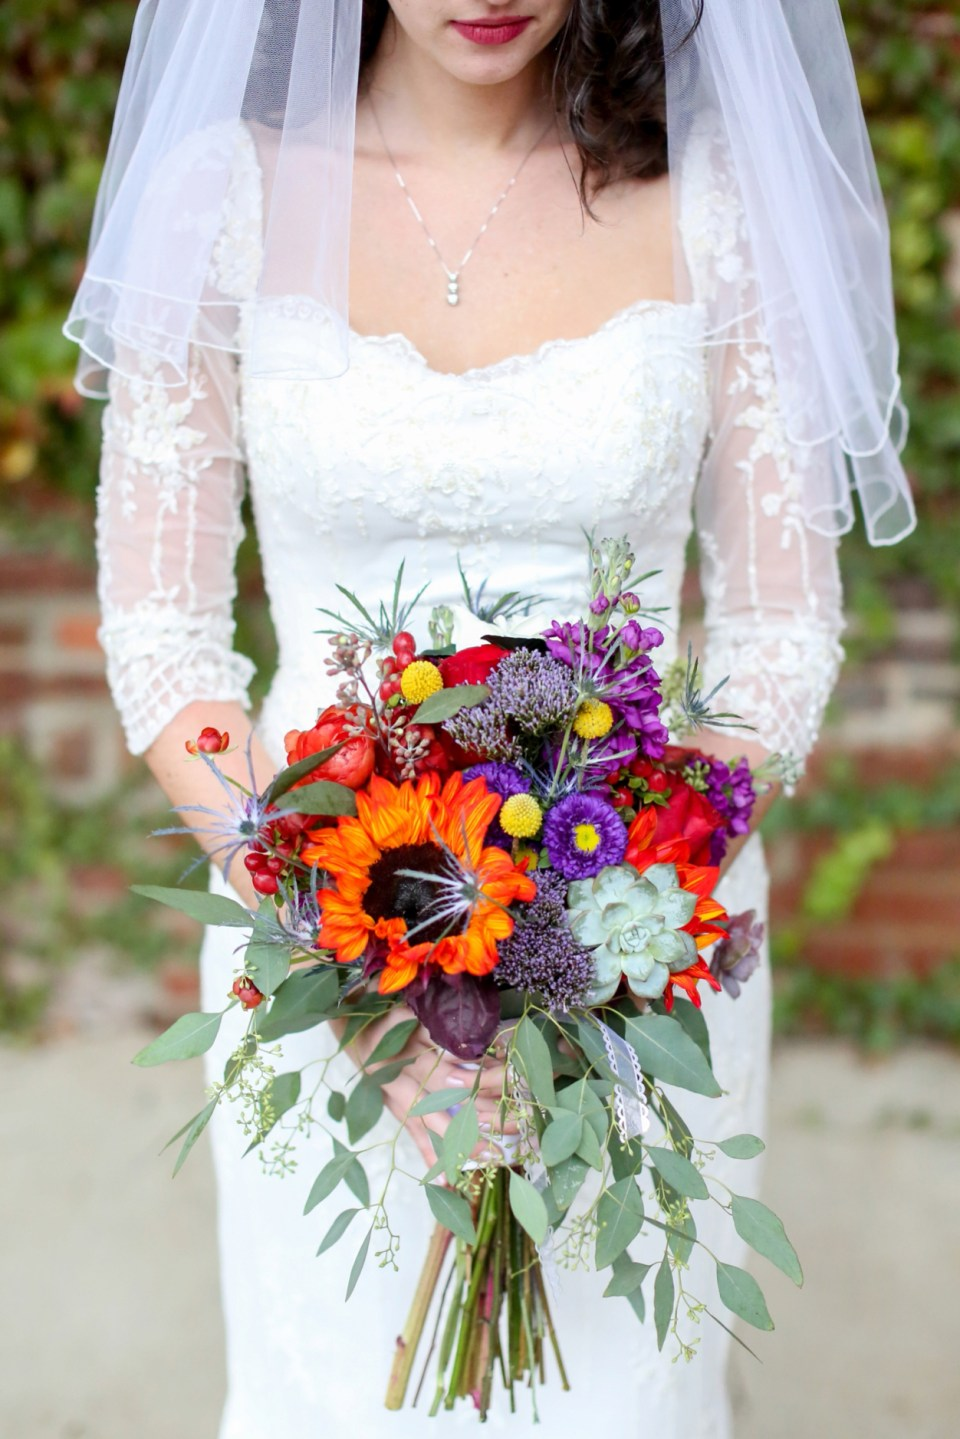 Fall-Wedding-Bouquet-Inspiration-Flowers-Bridal-Bridesmaids396